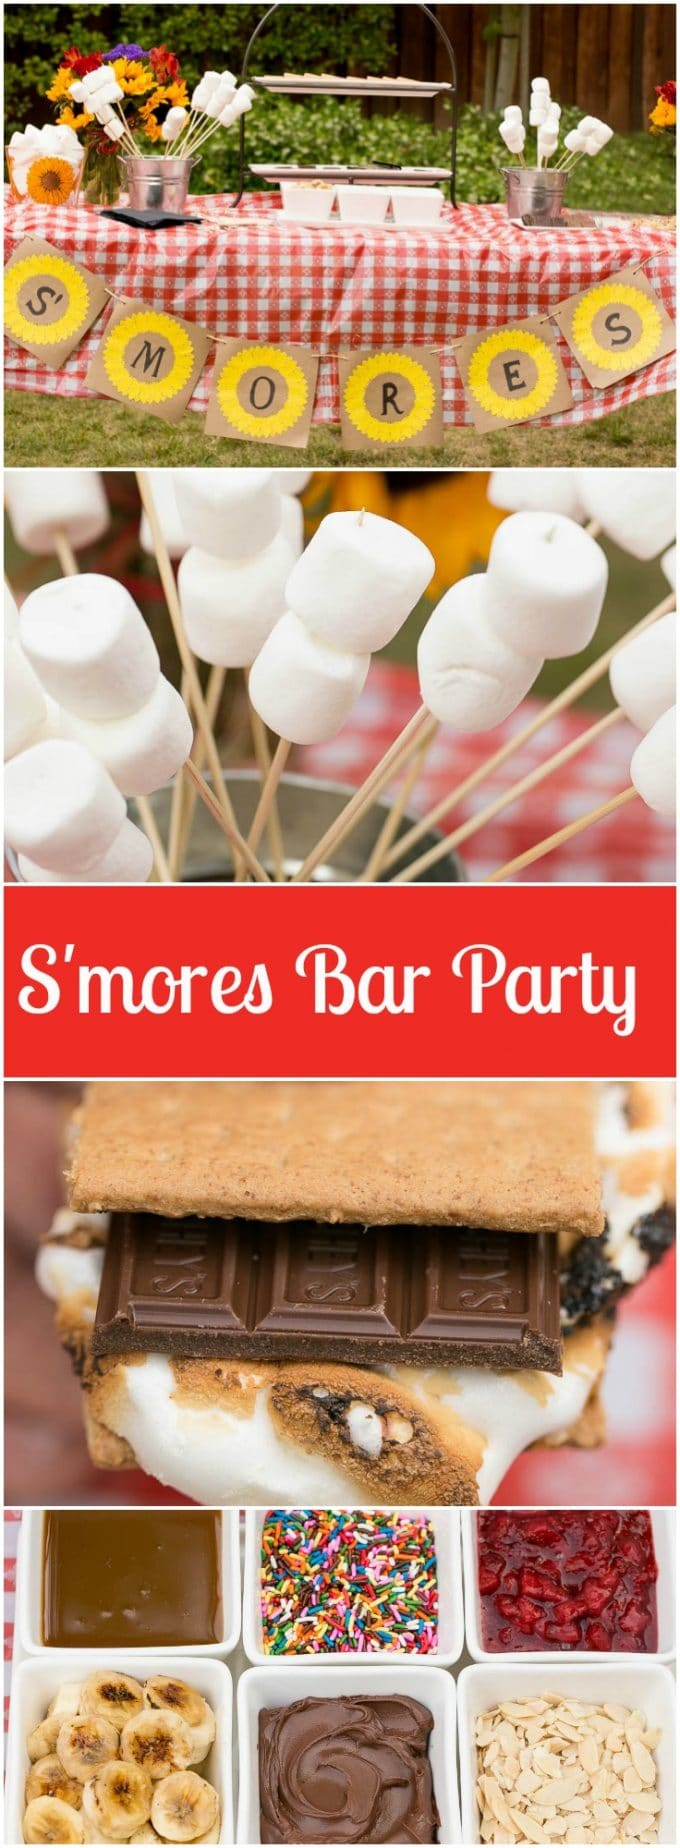 How to throw an amazing summer S'mores bar party plus a recipe for strawberry banana S'mores. #LetsMakeSmores #ad